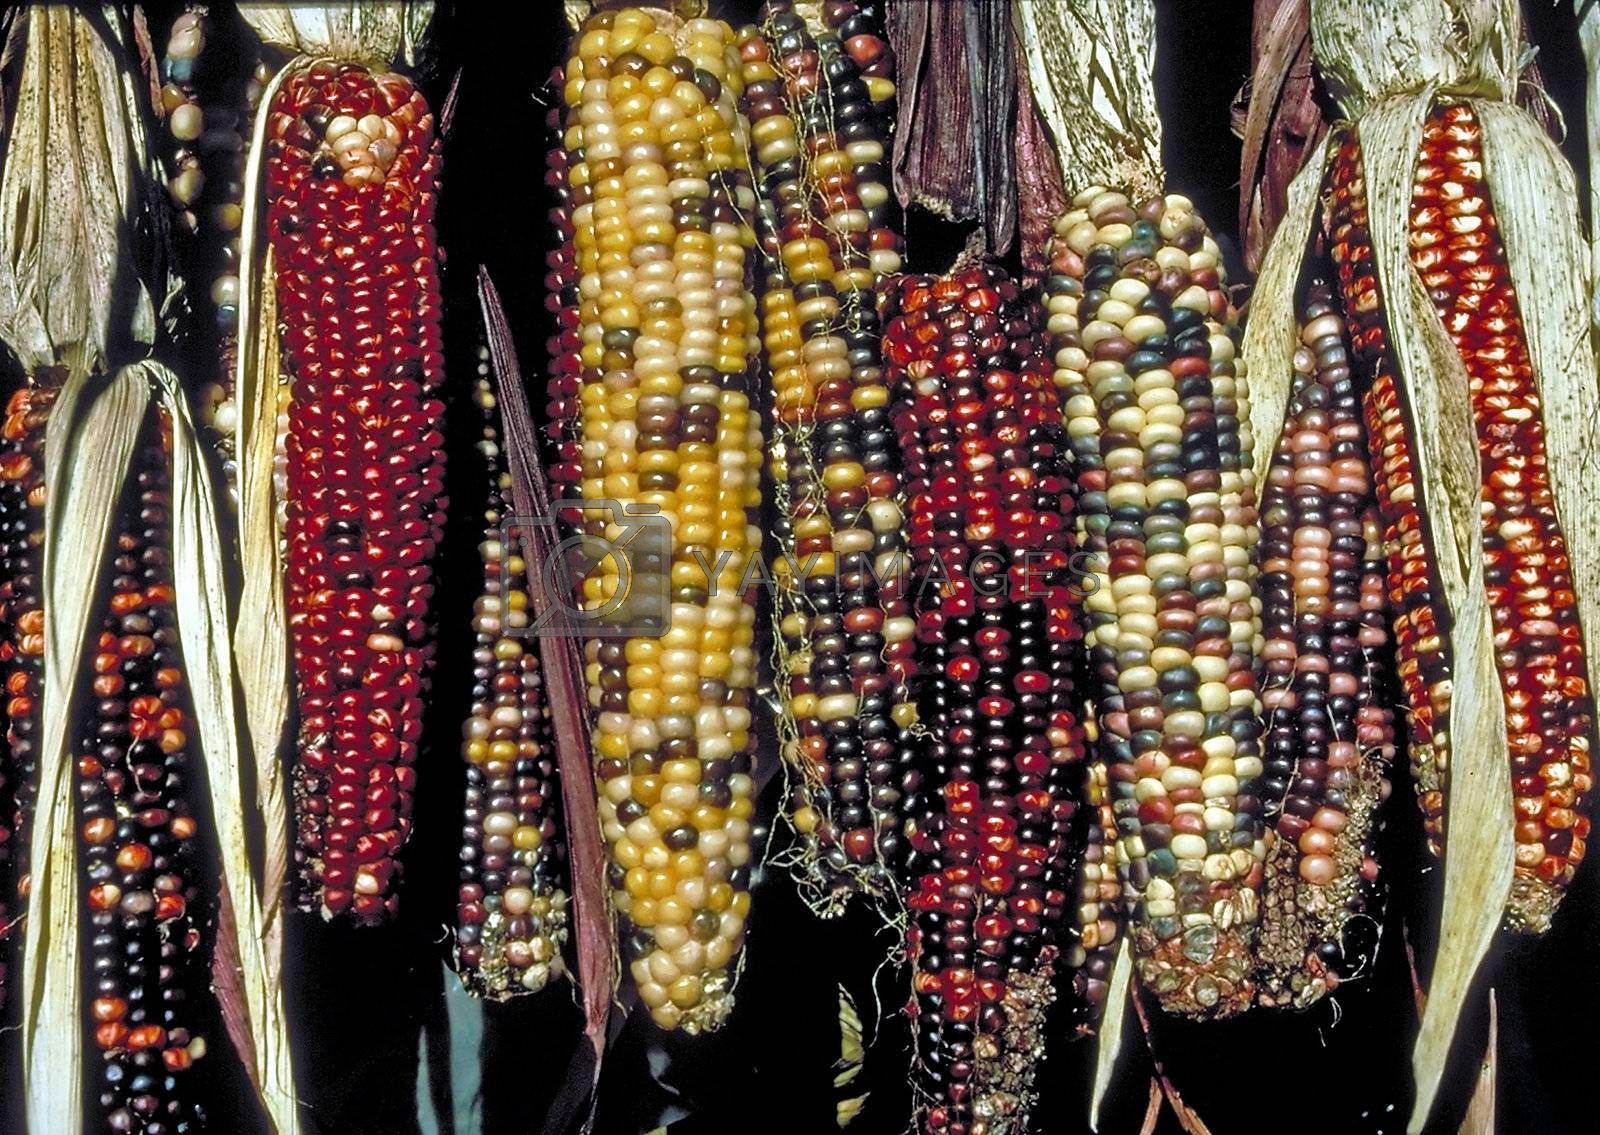 Several ears of colorful Indian Corn cobs hanging in the sun.